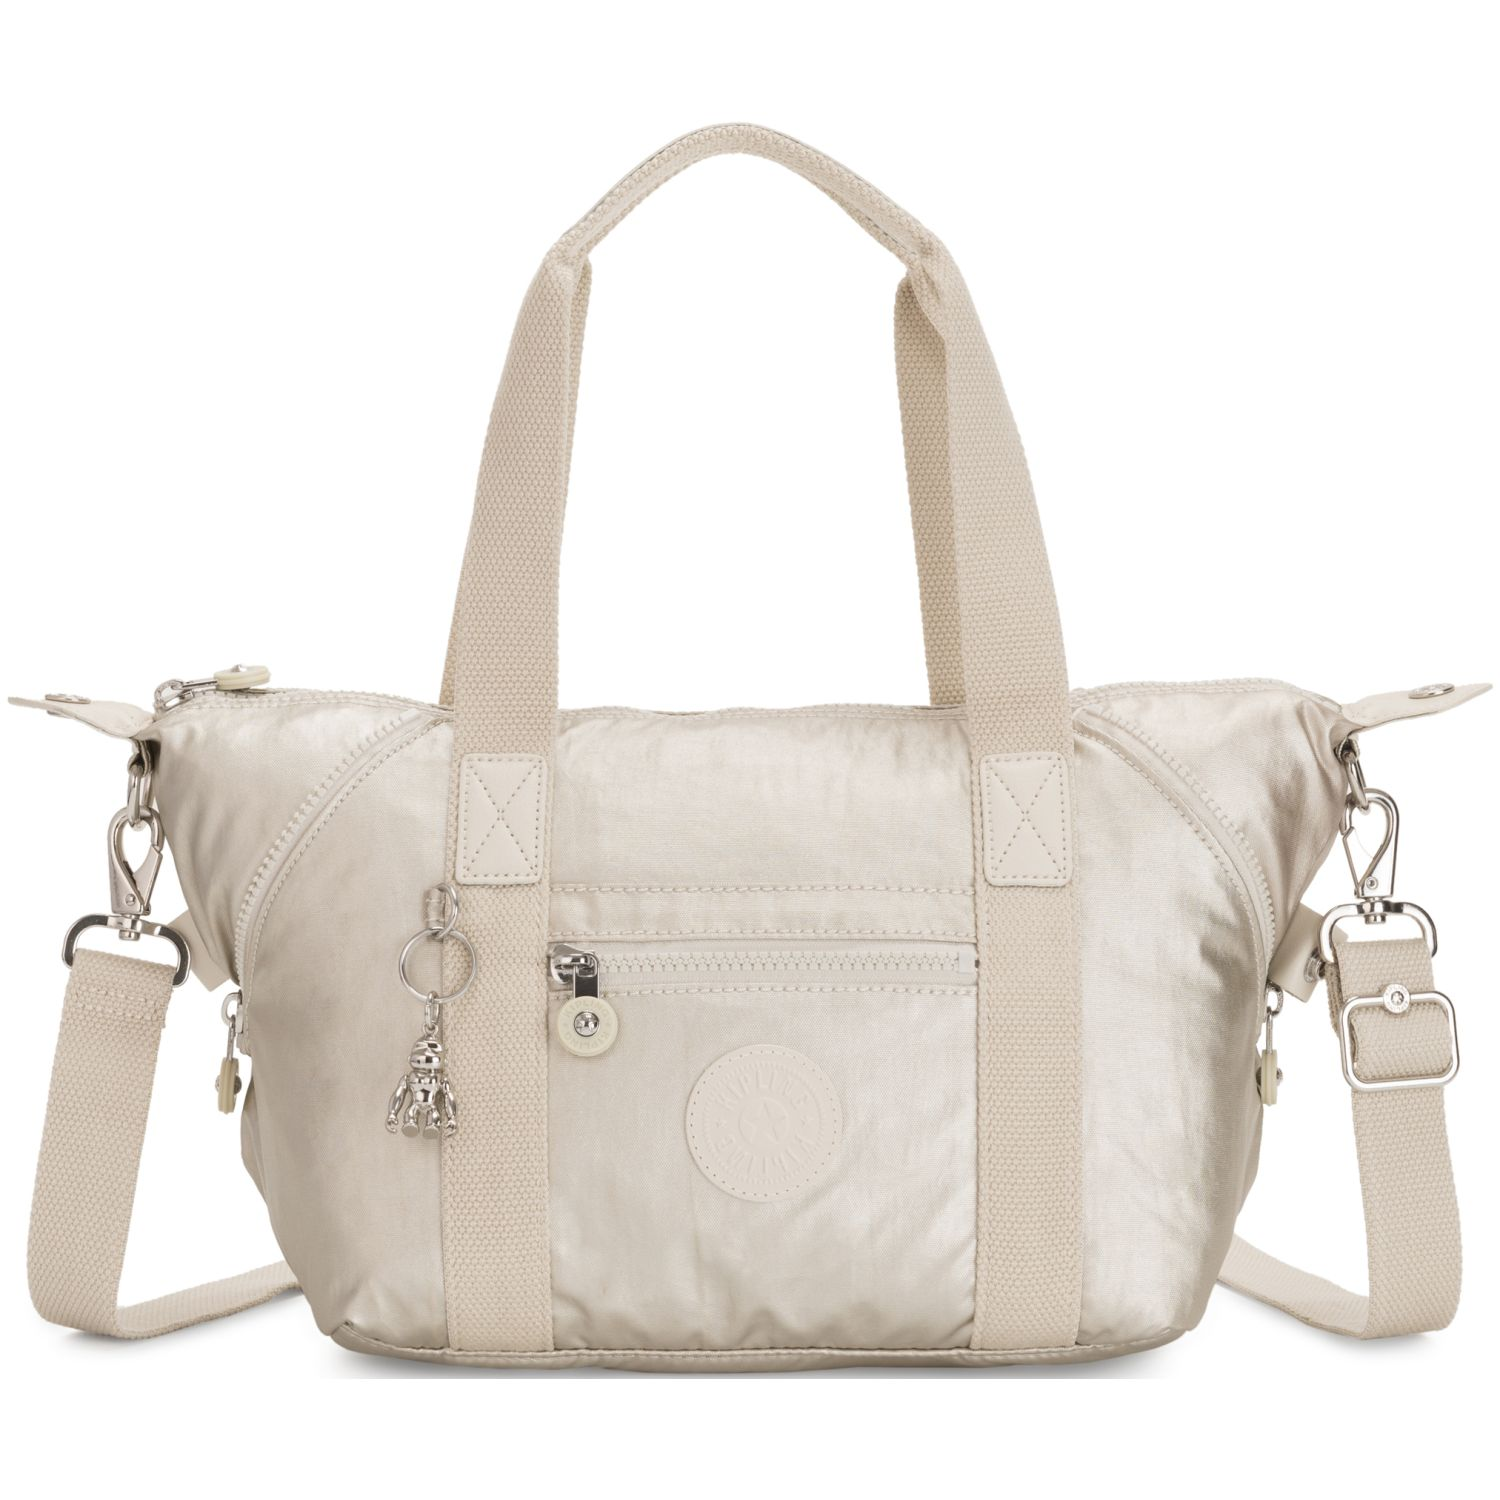 Kipling Cartera Art Mini Dorado Carteras con asa